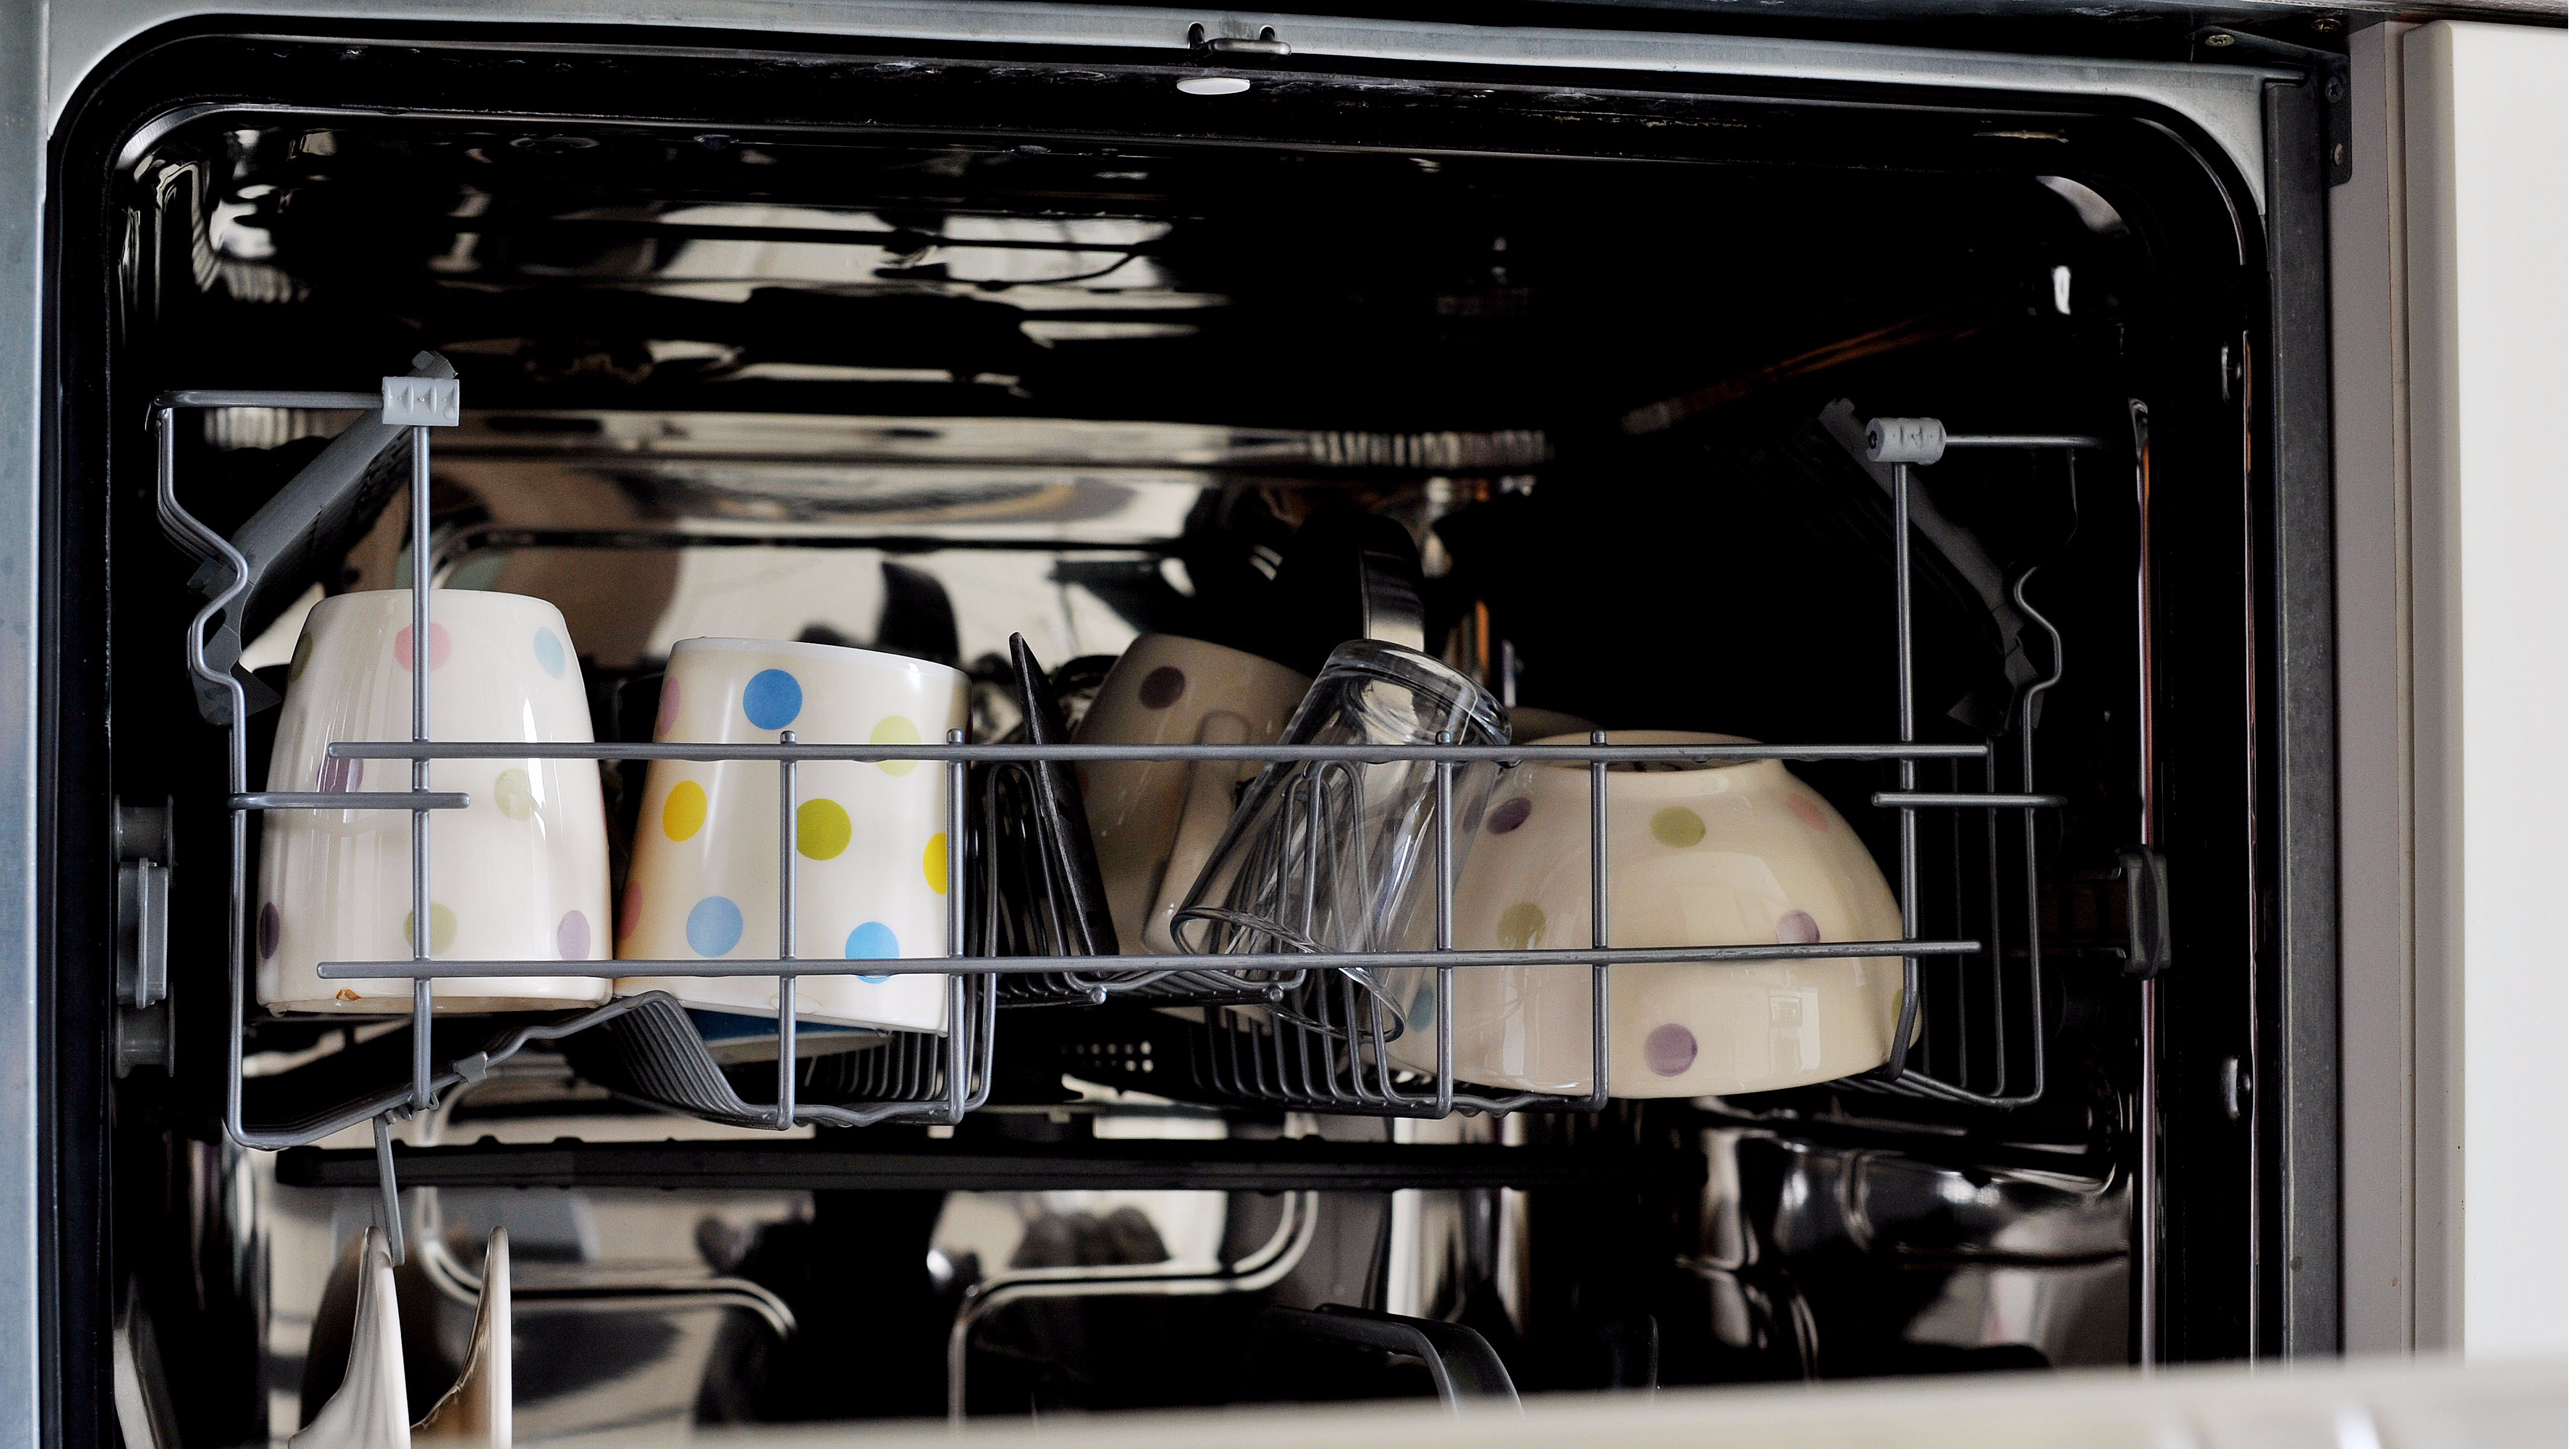 Mum Makes Incredibly Awkward Discovery In Dishwasher But It's Not What It Looks Like